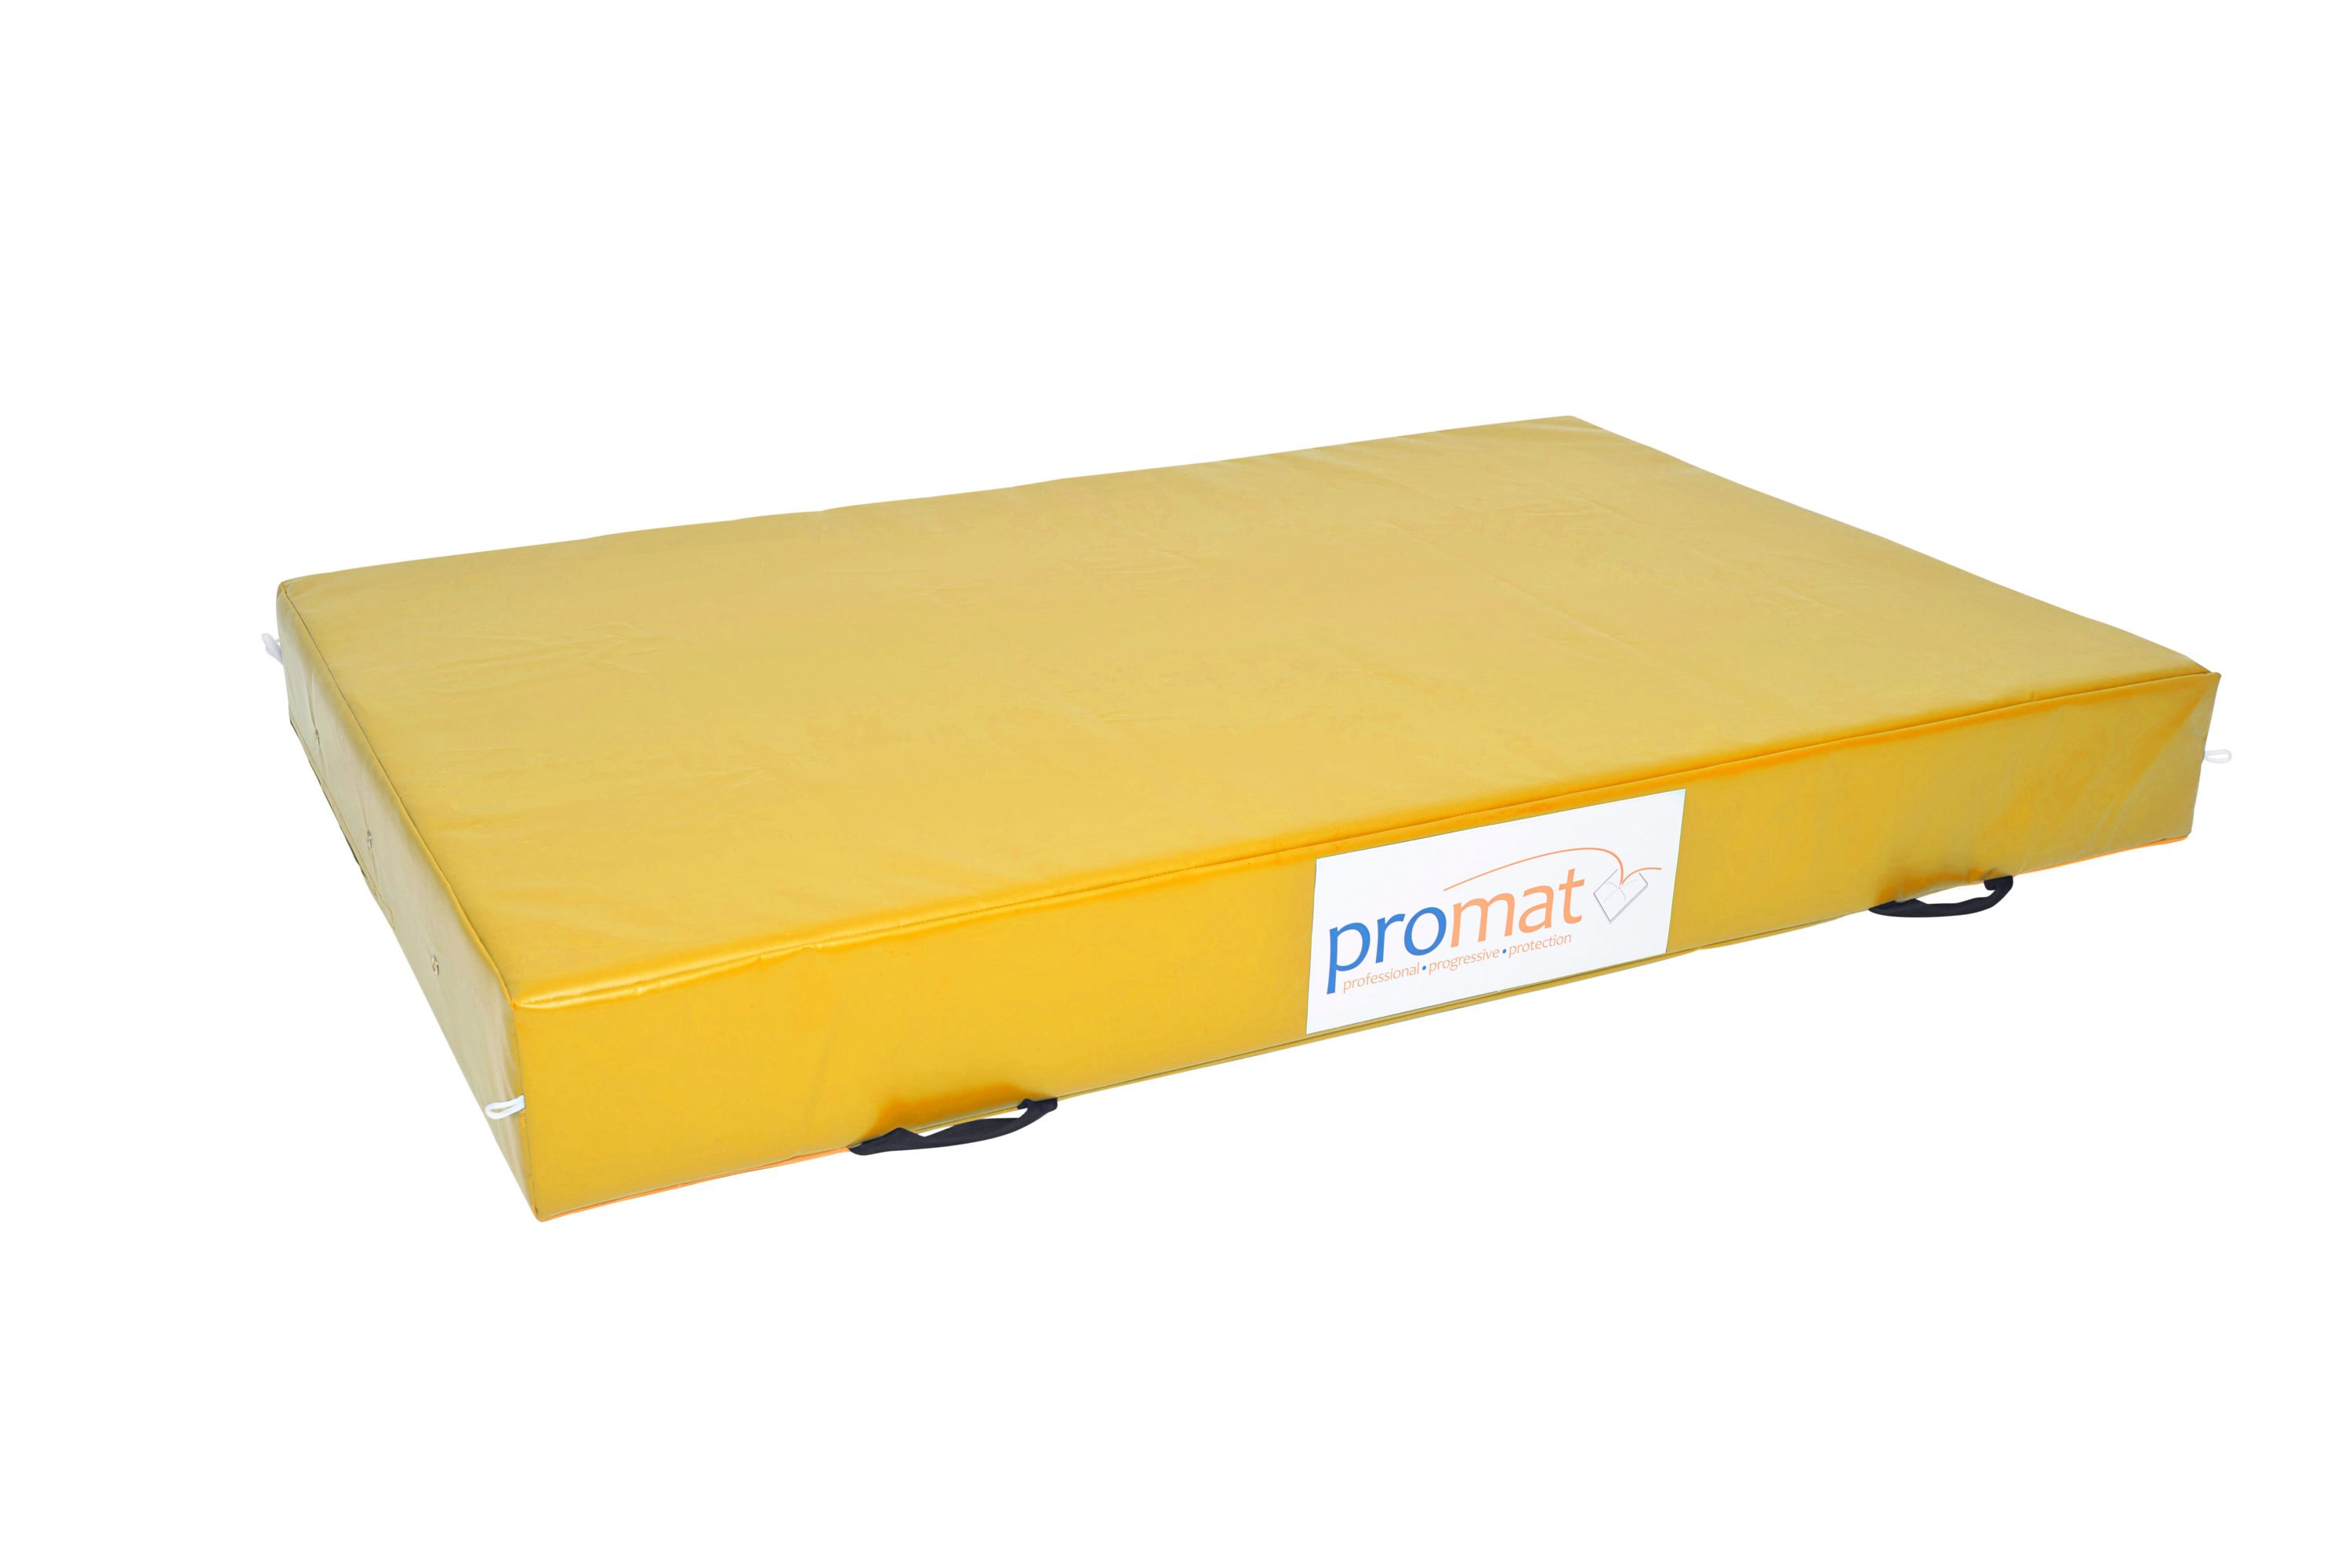 Promat Gymnastics Crash Mat Thick Crash Mats For Sale